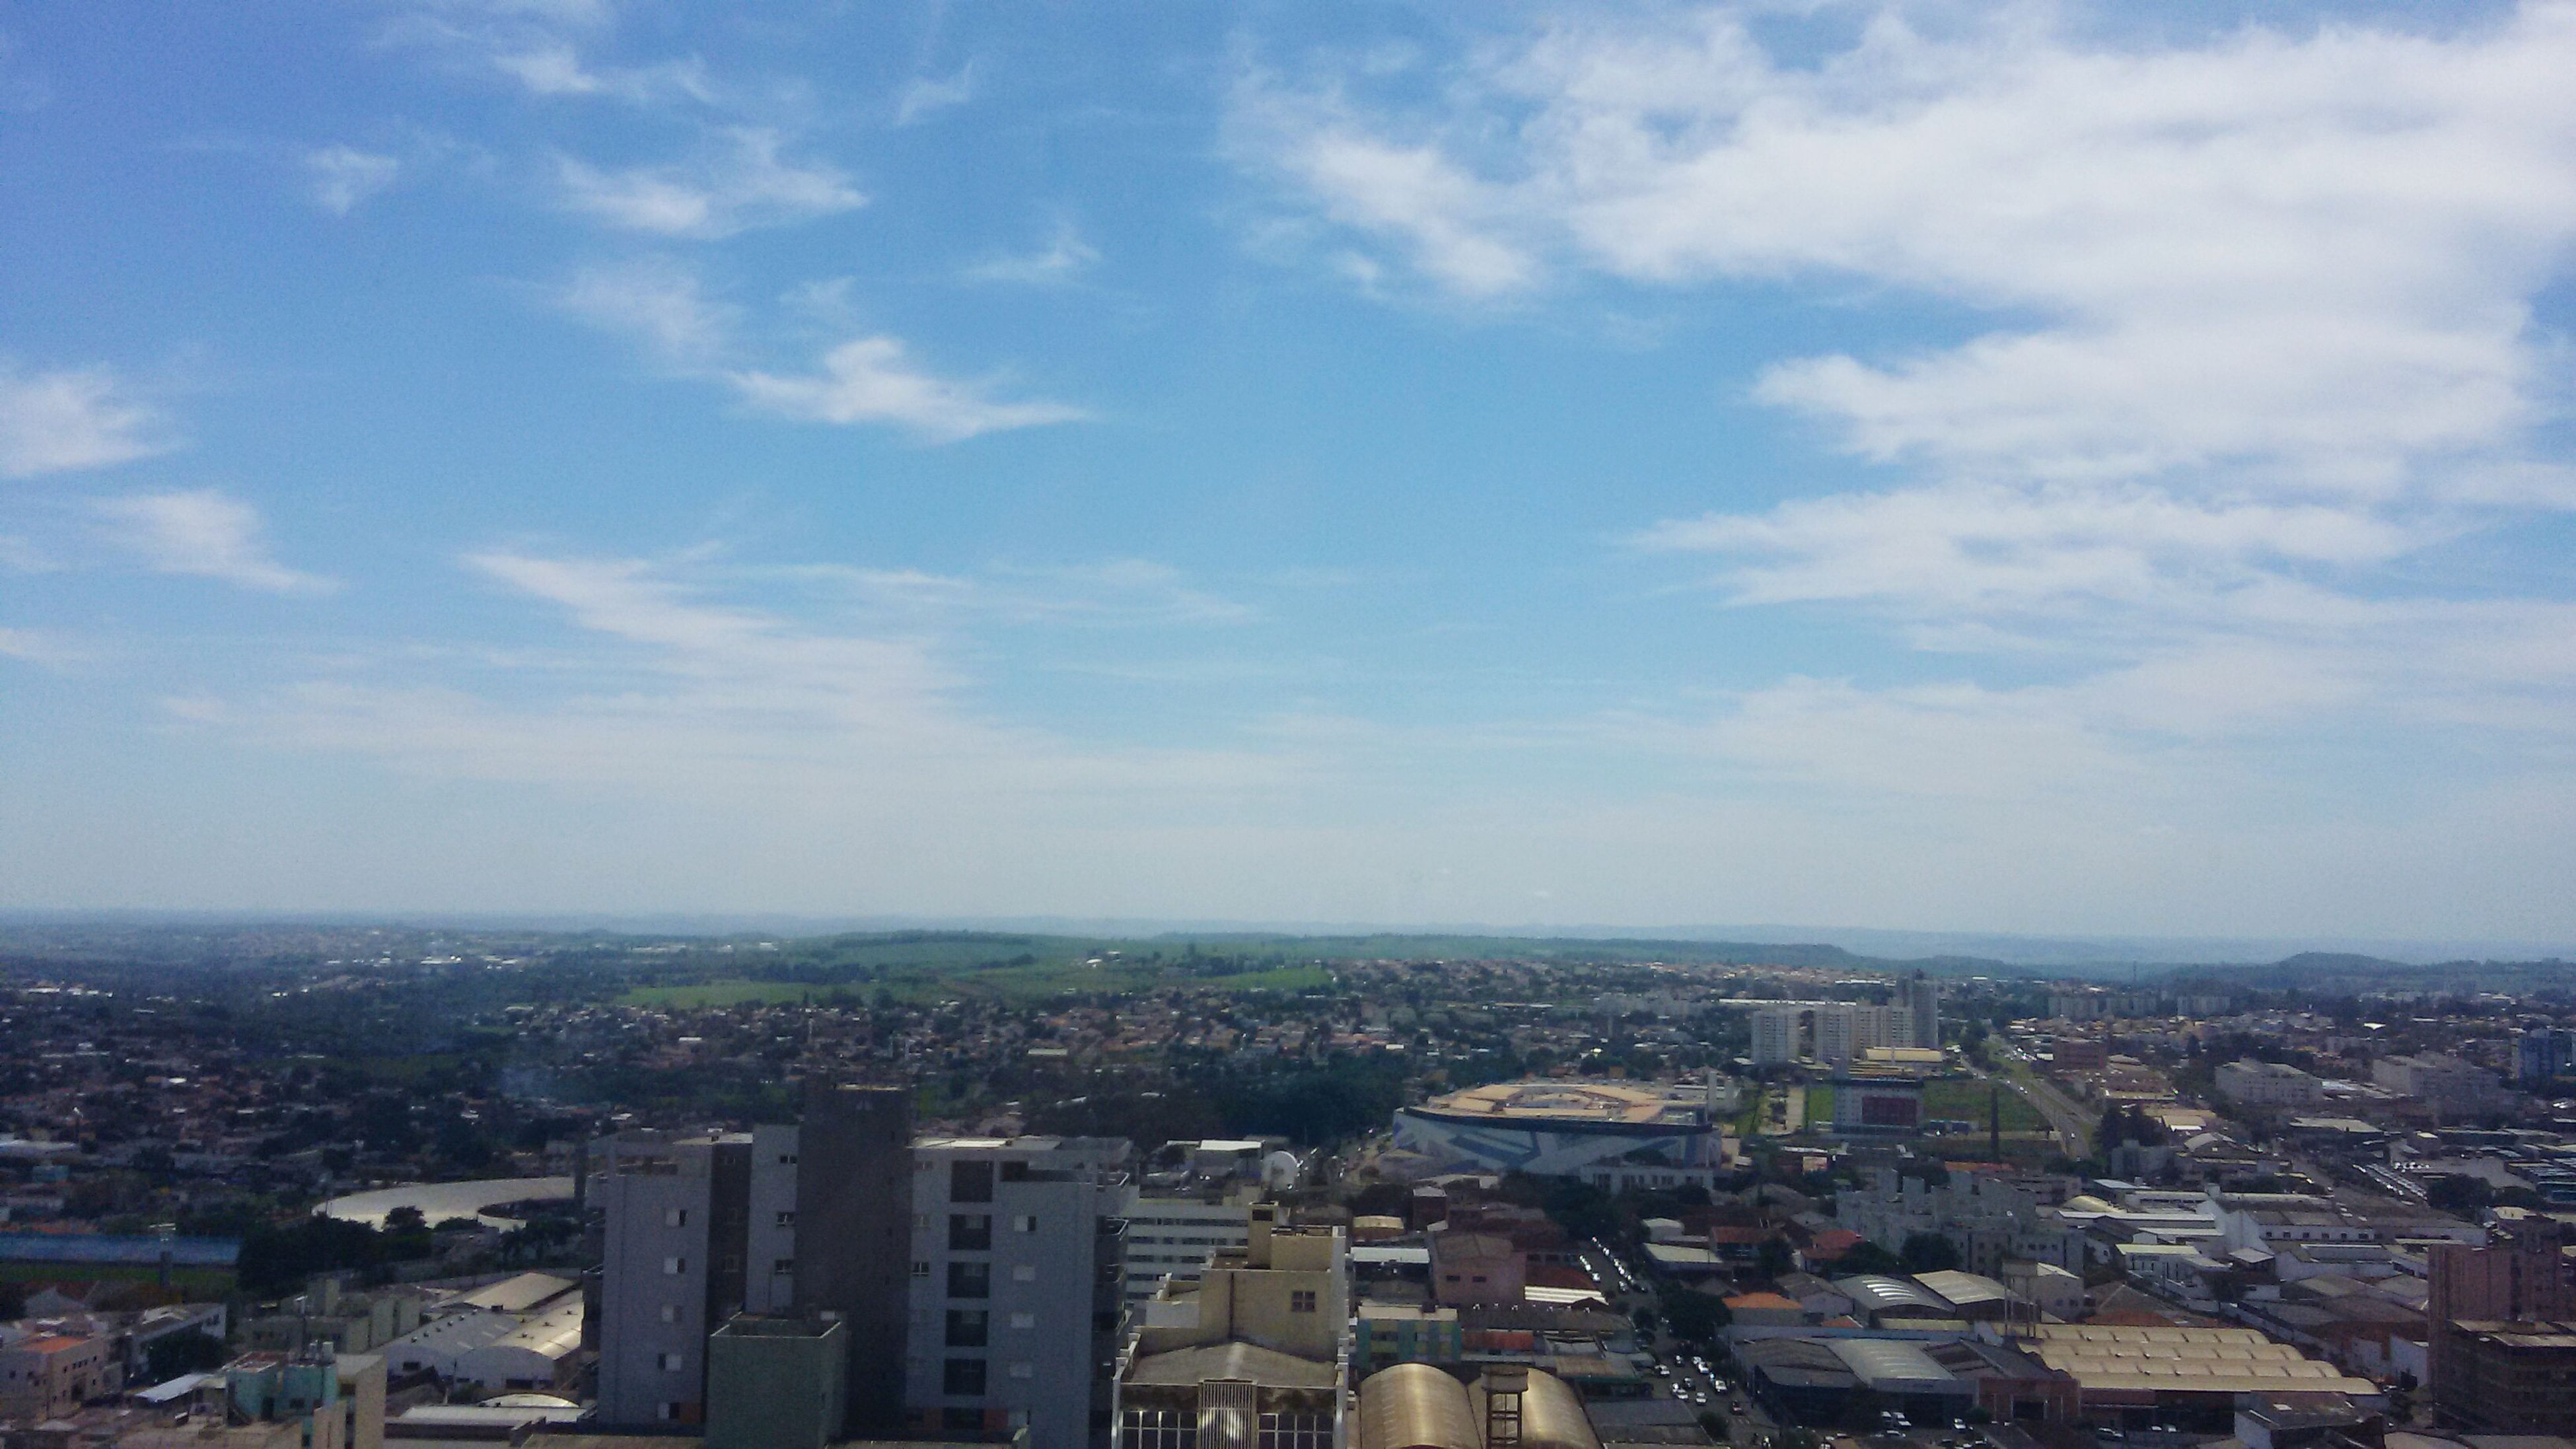 cityscape, building exterior, city, architecture, built structure, crowded, sky, high angle view, residential district, cloud - sky, aerial view, residential building, residential structure, cloud, city life, skyscraper, outdoors, no people, day, cloudy